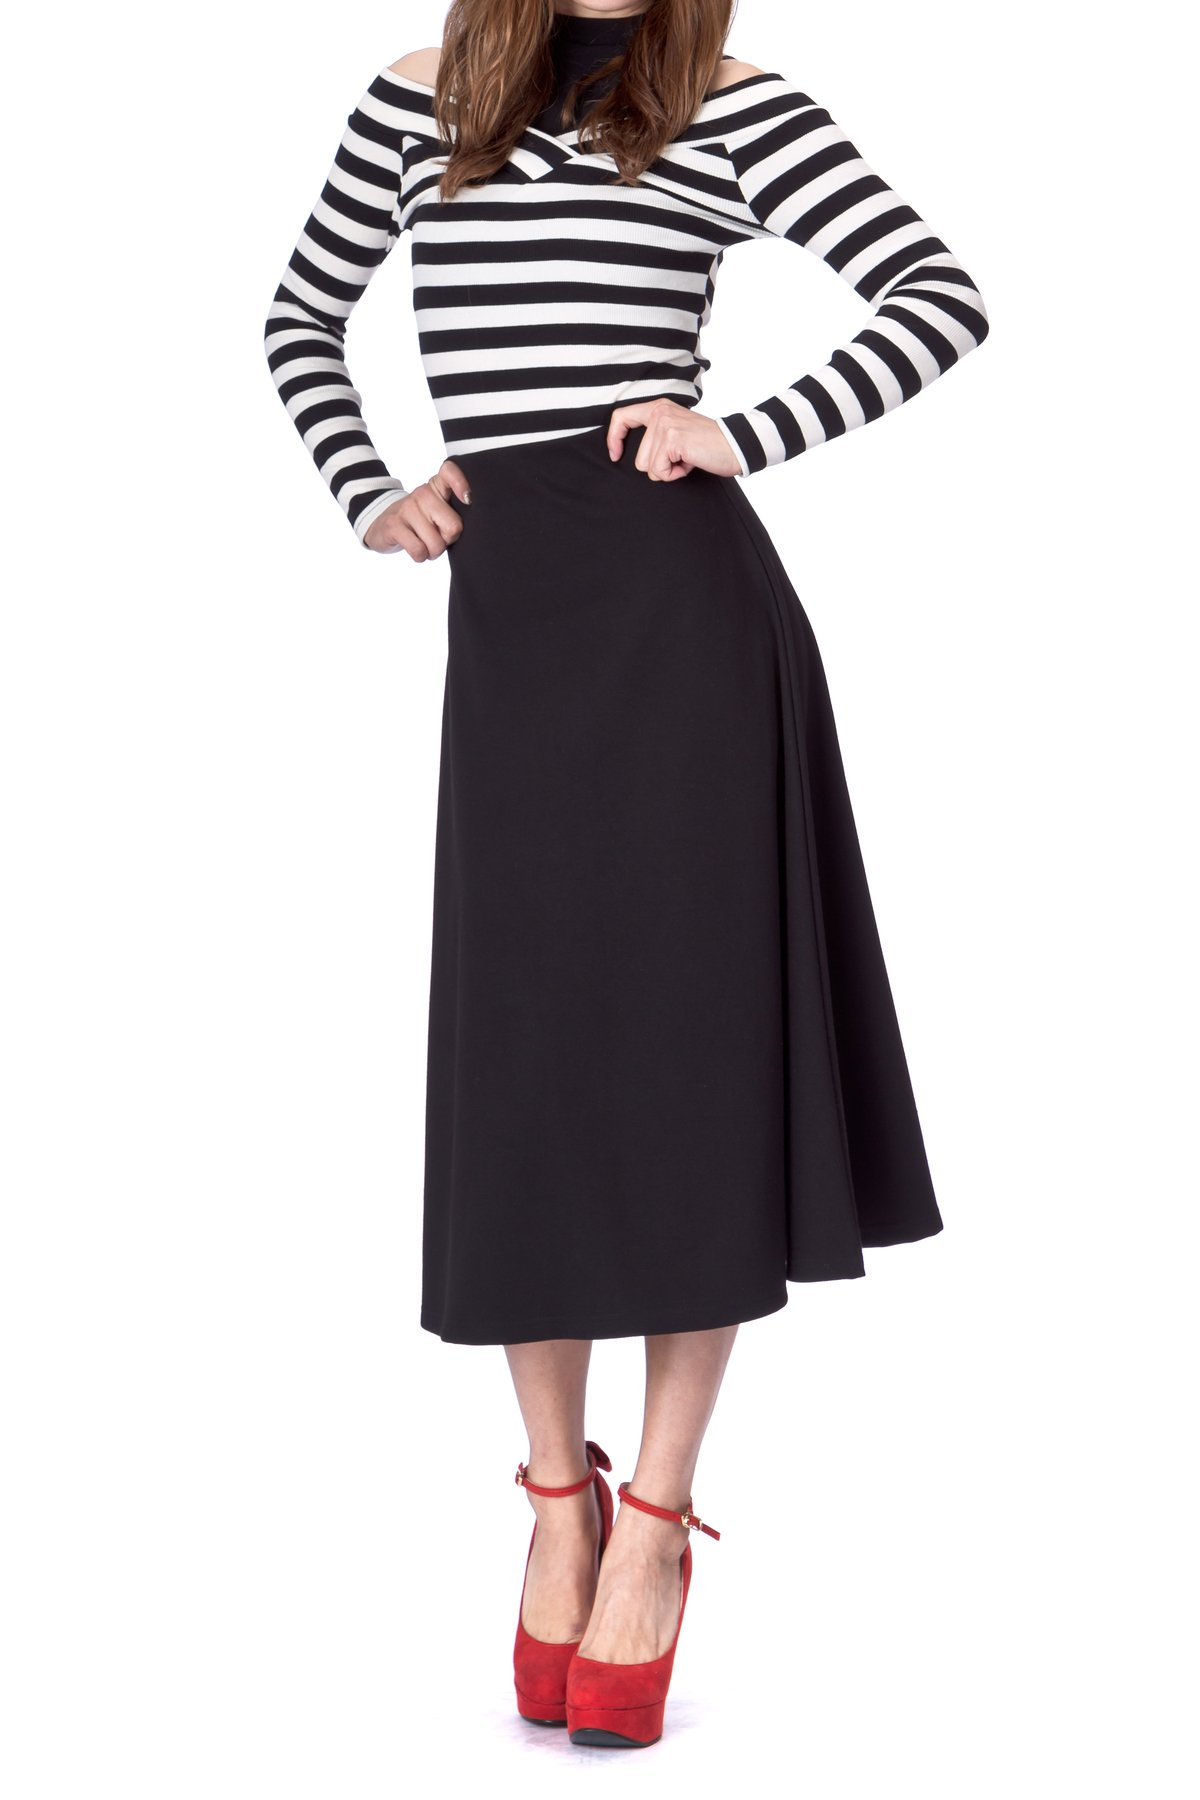 Elastic Waist A line Flared Long Skirt Black 03